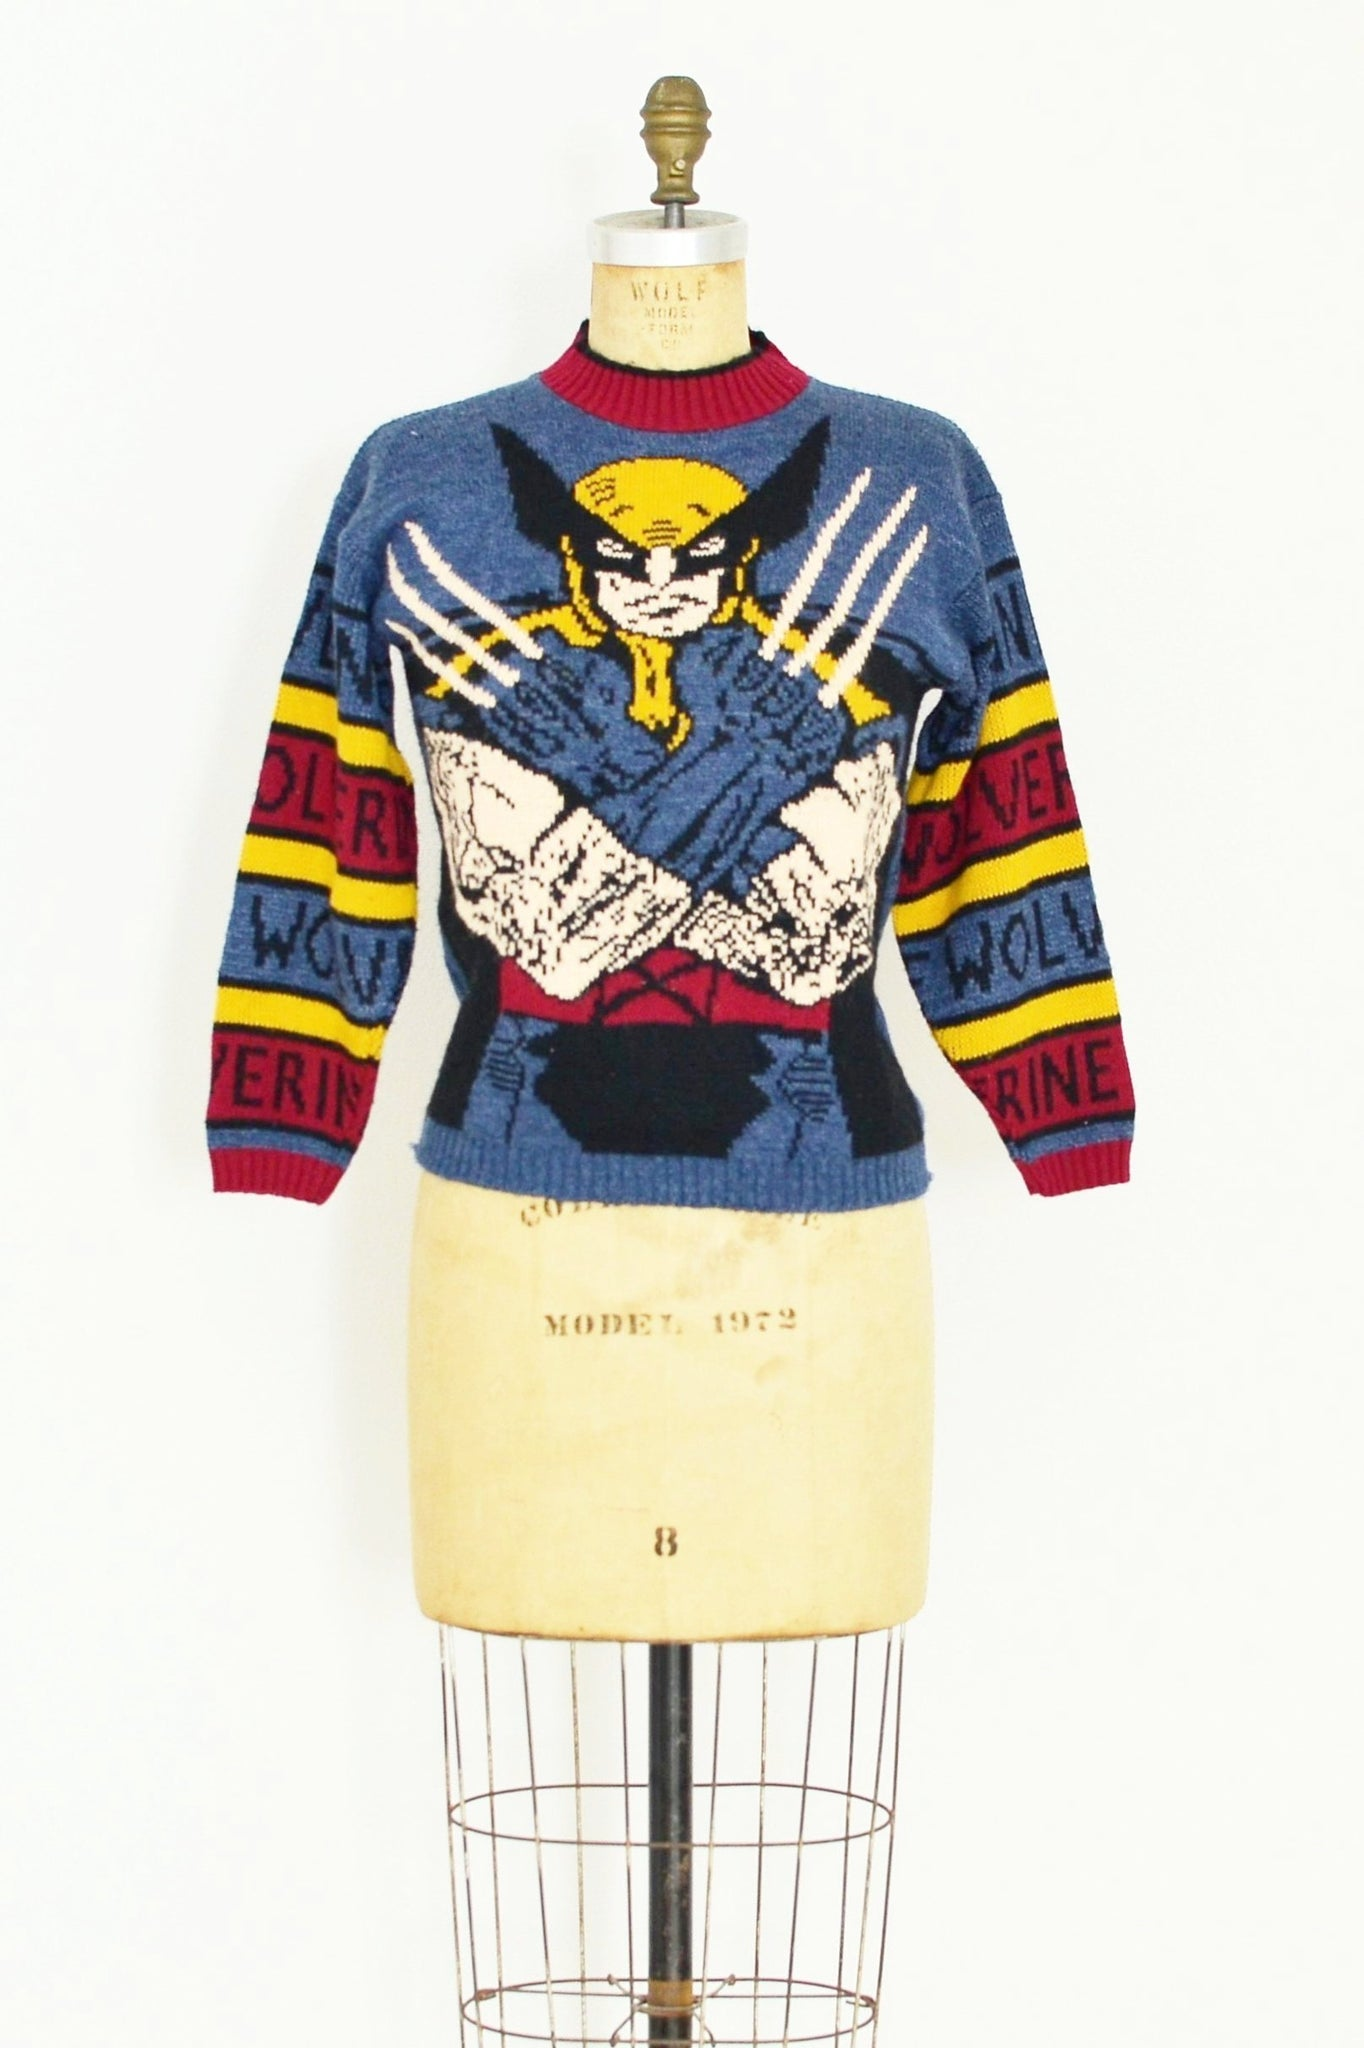 Rare Wolverine Sweater - Pickled Vintage